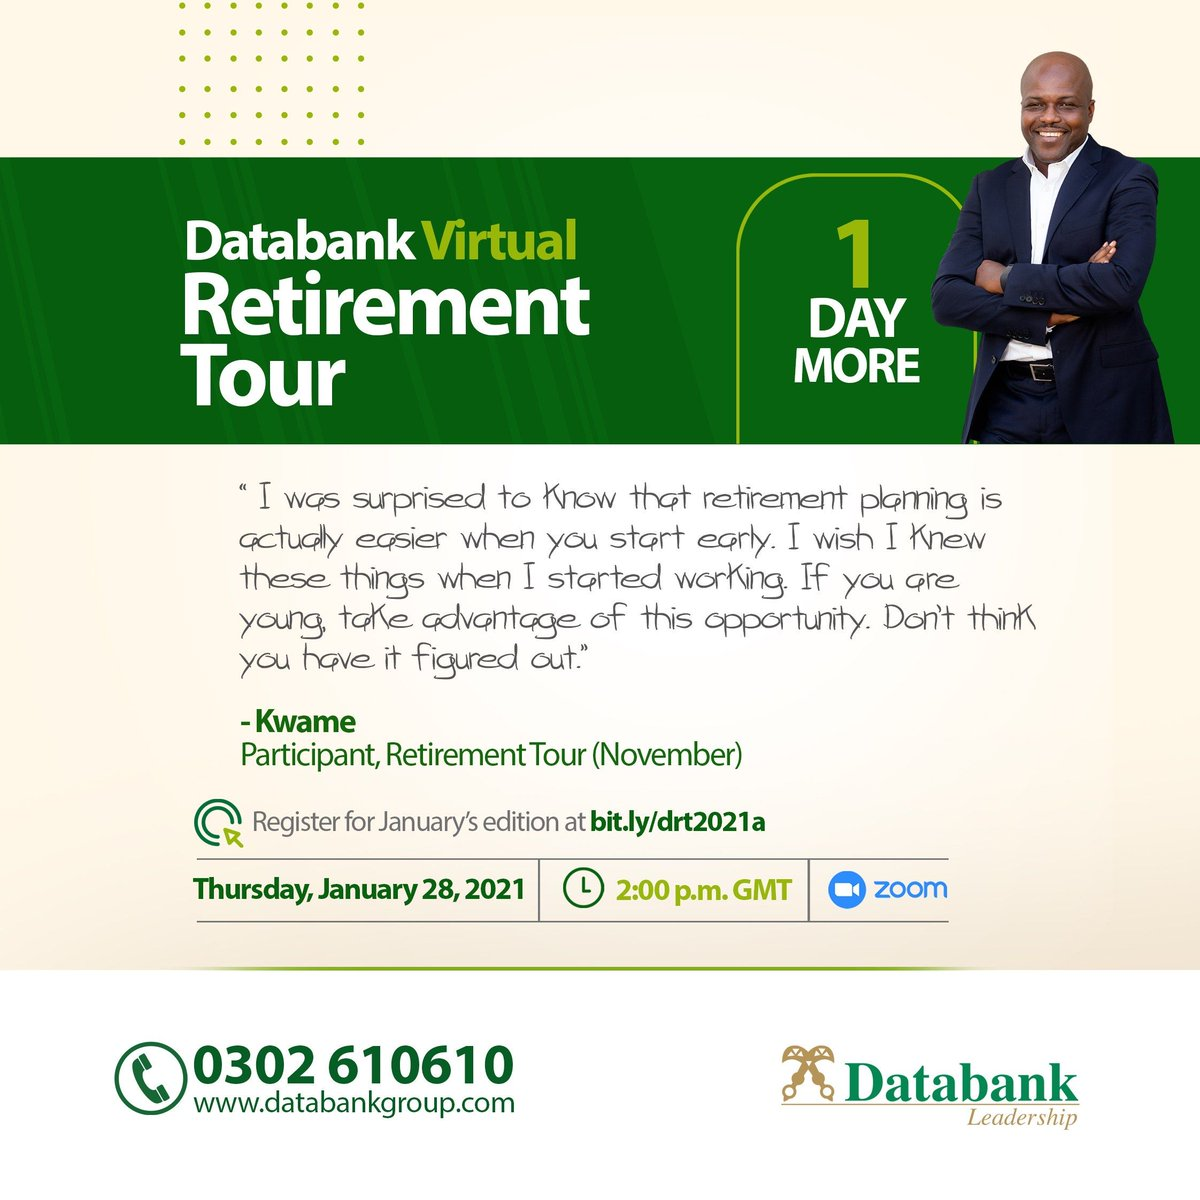 1 Day More!  Get to educate yourself at the Databank Virtual  Retirement Tour on Thursday,28th January, 2021, 2:00 p.m. prompt.  Register right here 👉🏾 https://t.co/6CtcivkQ0N  #DRT2021 #Retirement #Investment https://t.co/lBwXVtGVBk https://t.co/D99cwU0poj